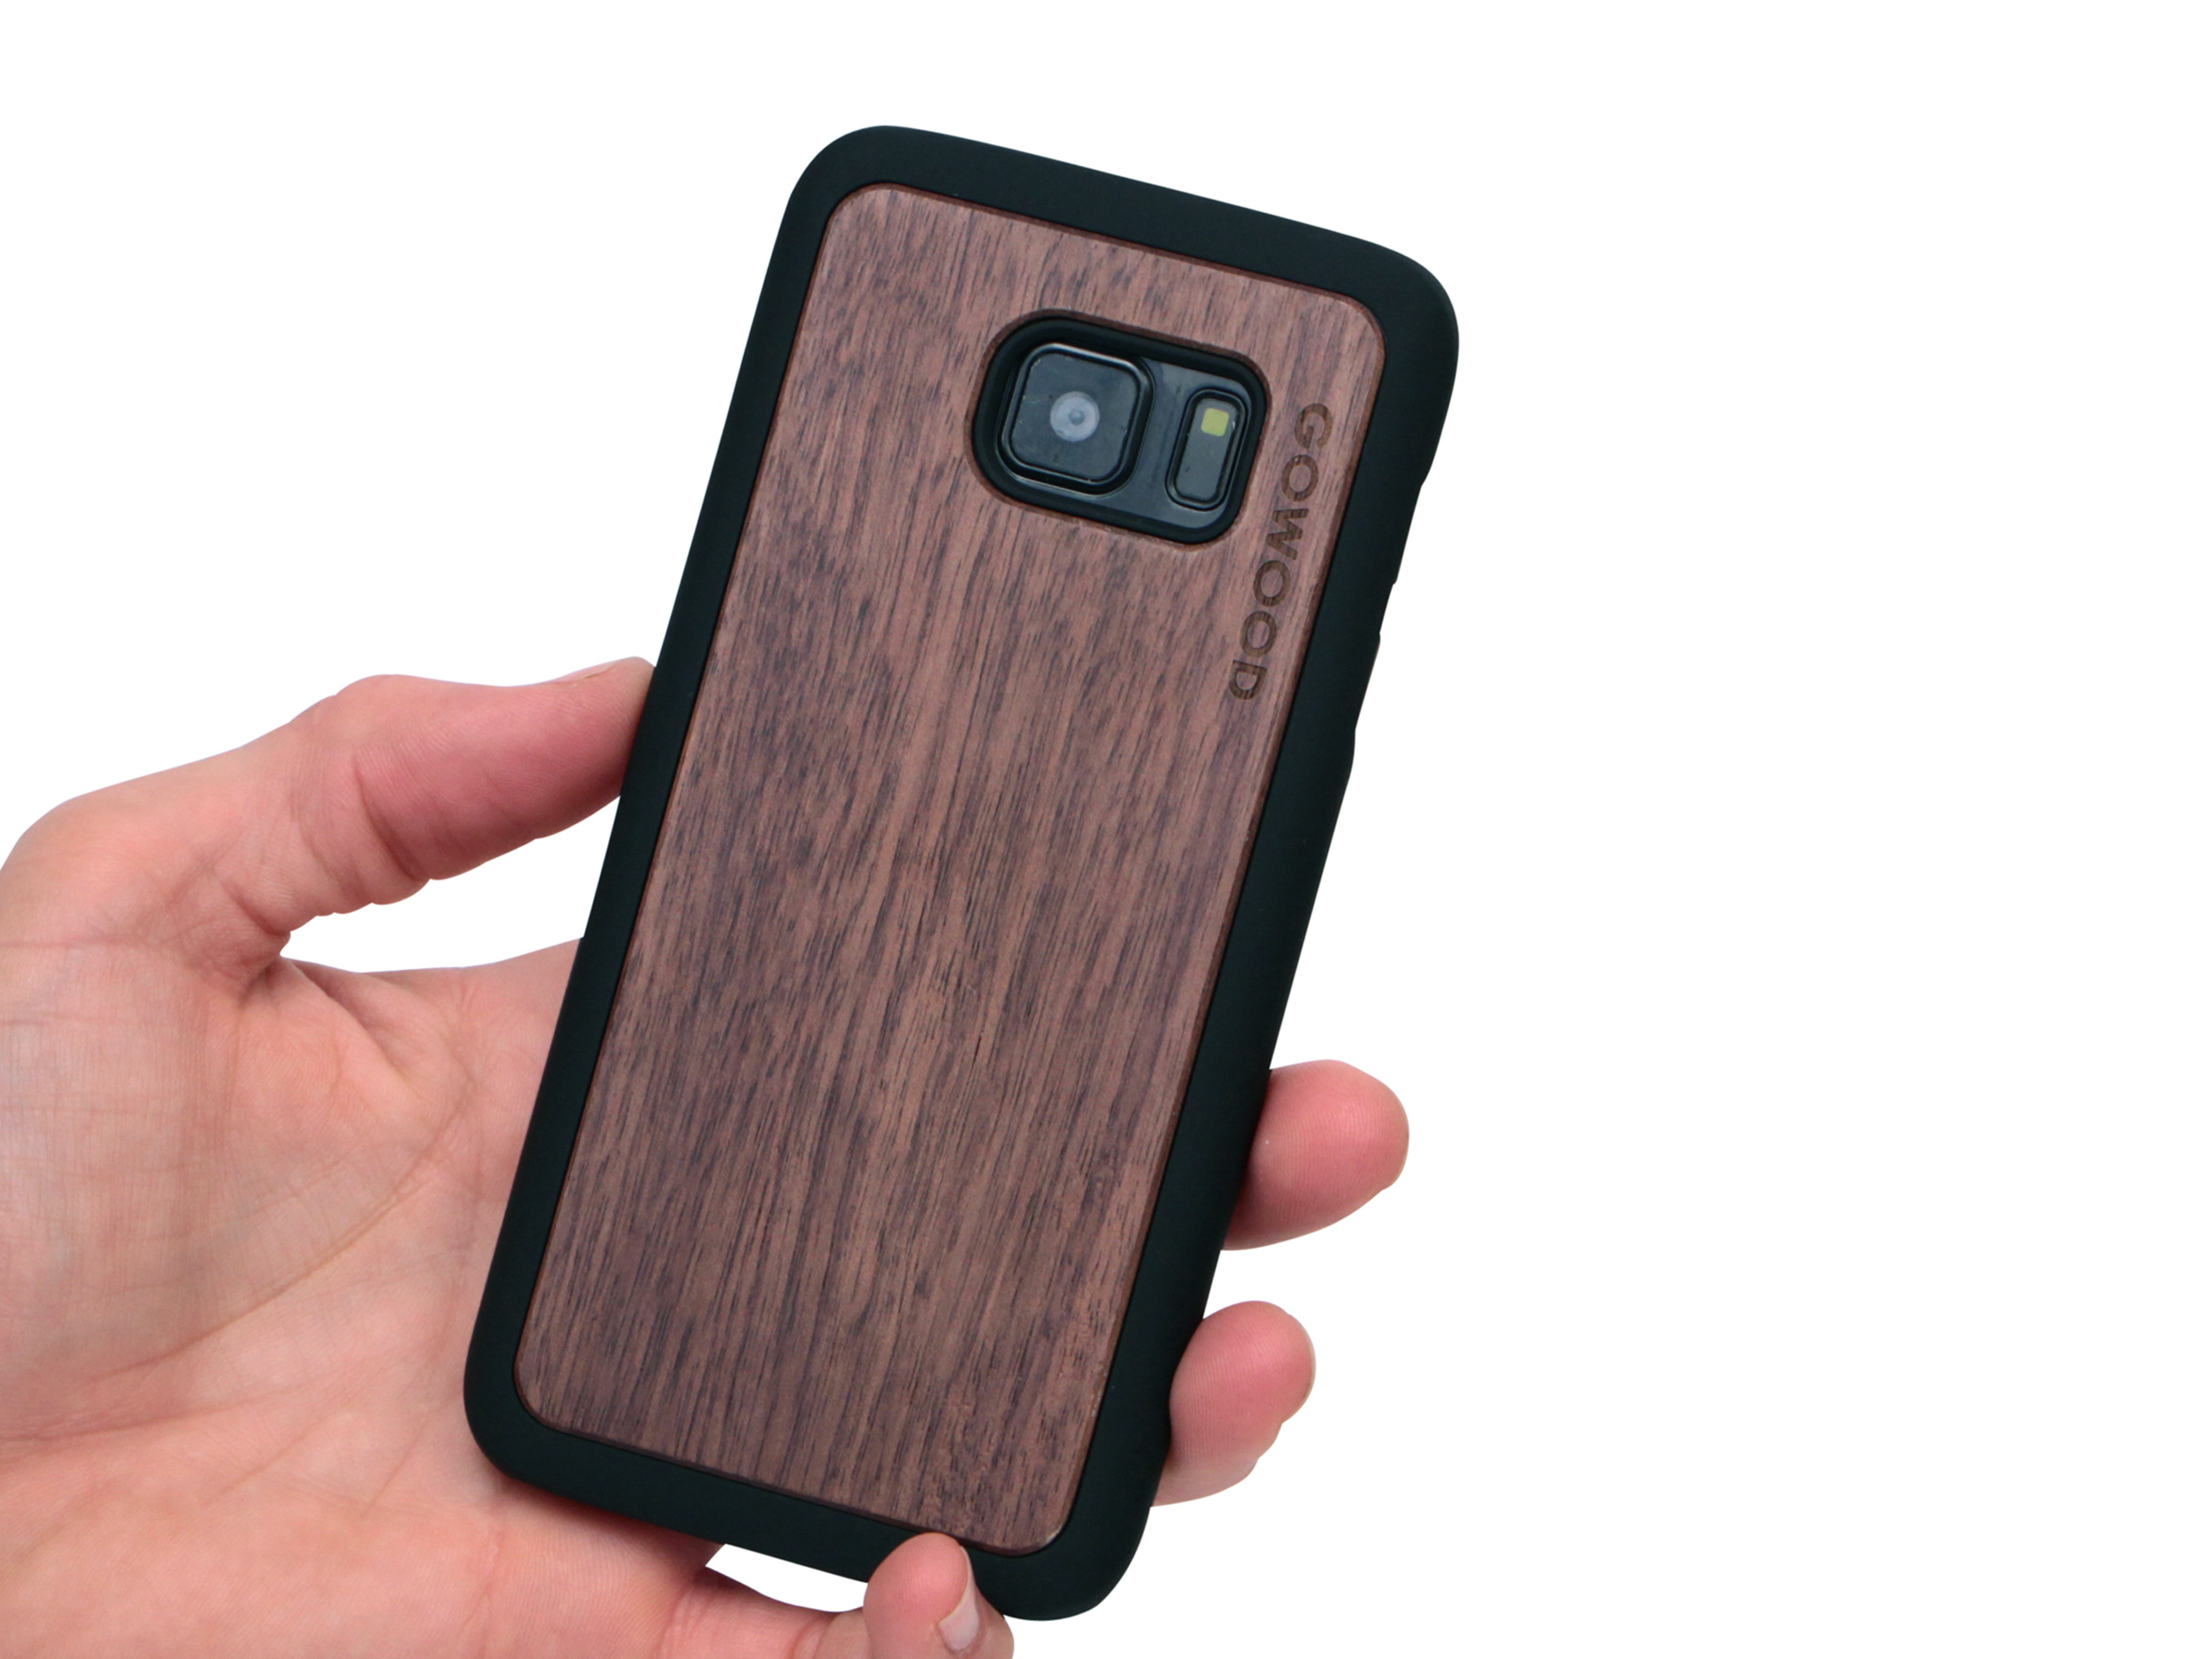 Samsung Galaxy S7 wood case walnut user 1